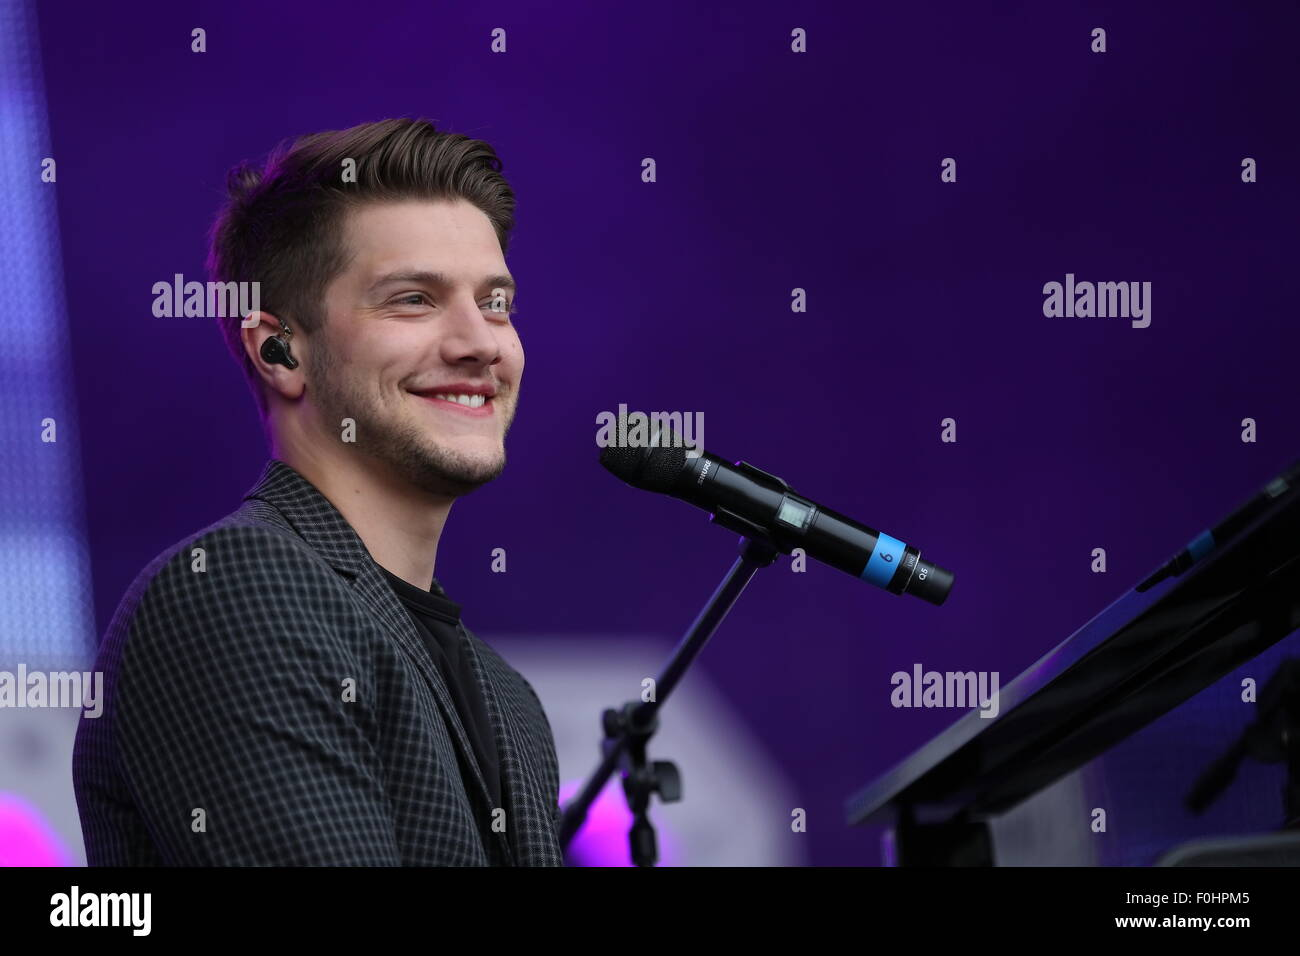 Betley, Cheshire, UK. 16th August, 2015. AJ Brown performs live at Betley Concerts held at Betley Court Farm. Credit: - Stock Image